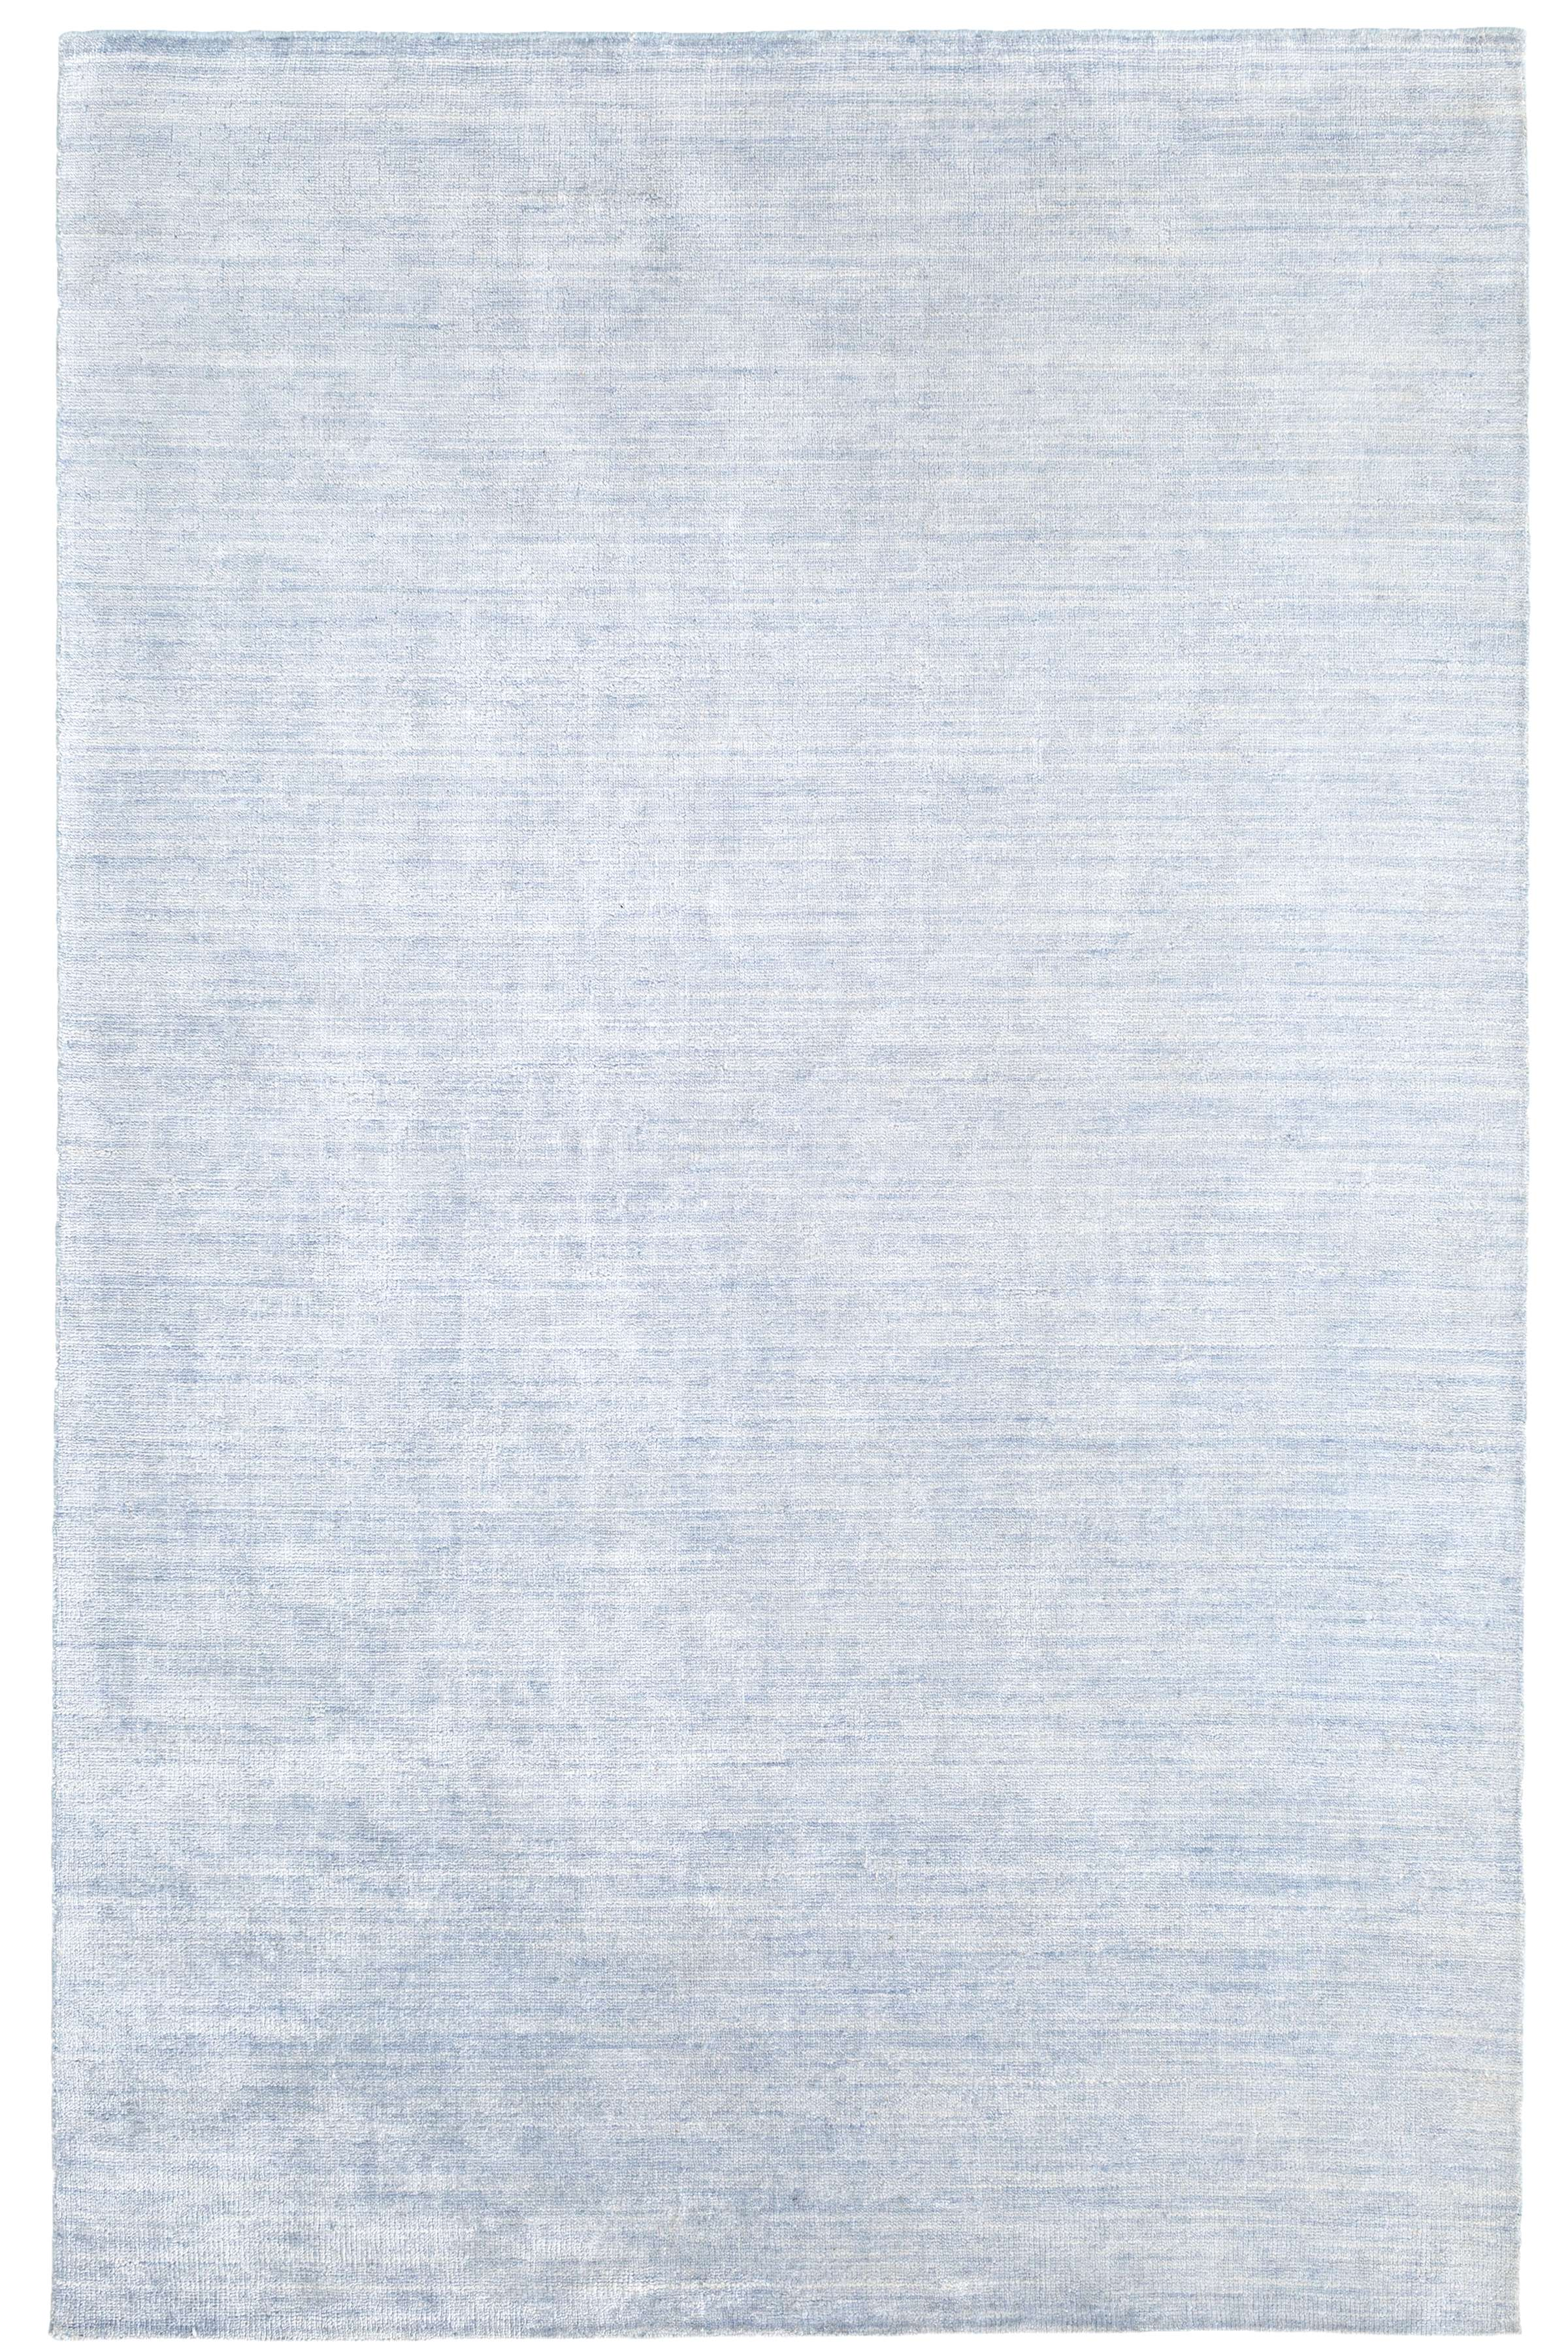 Alloy Delphinium Loom Knotted Bamboo Rug Dash Albert